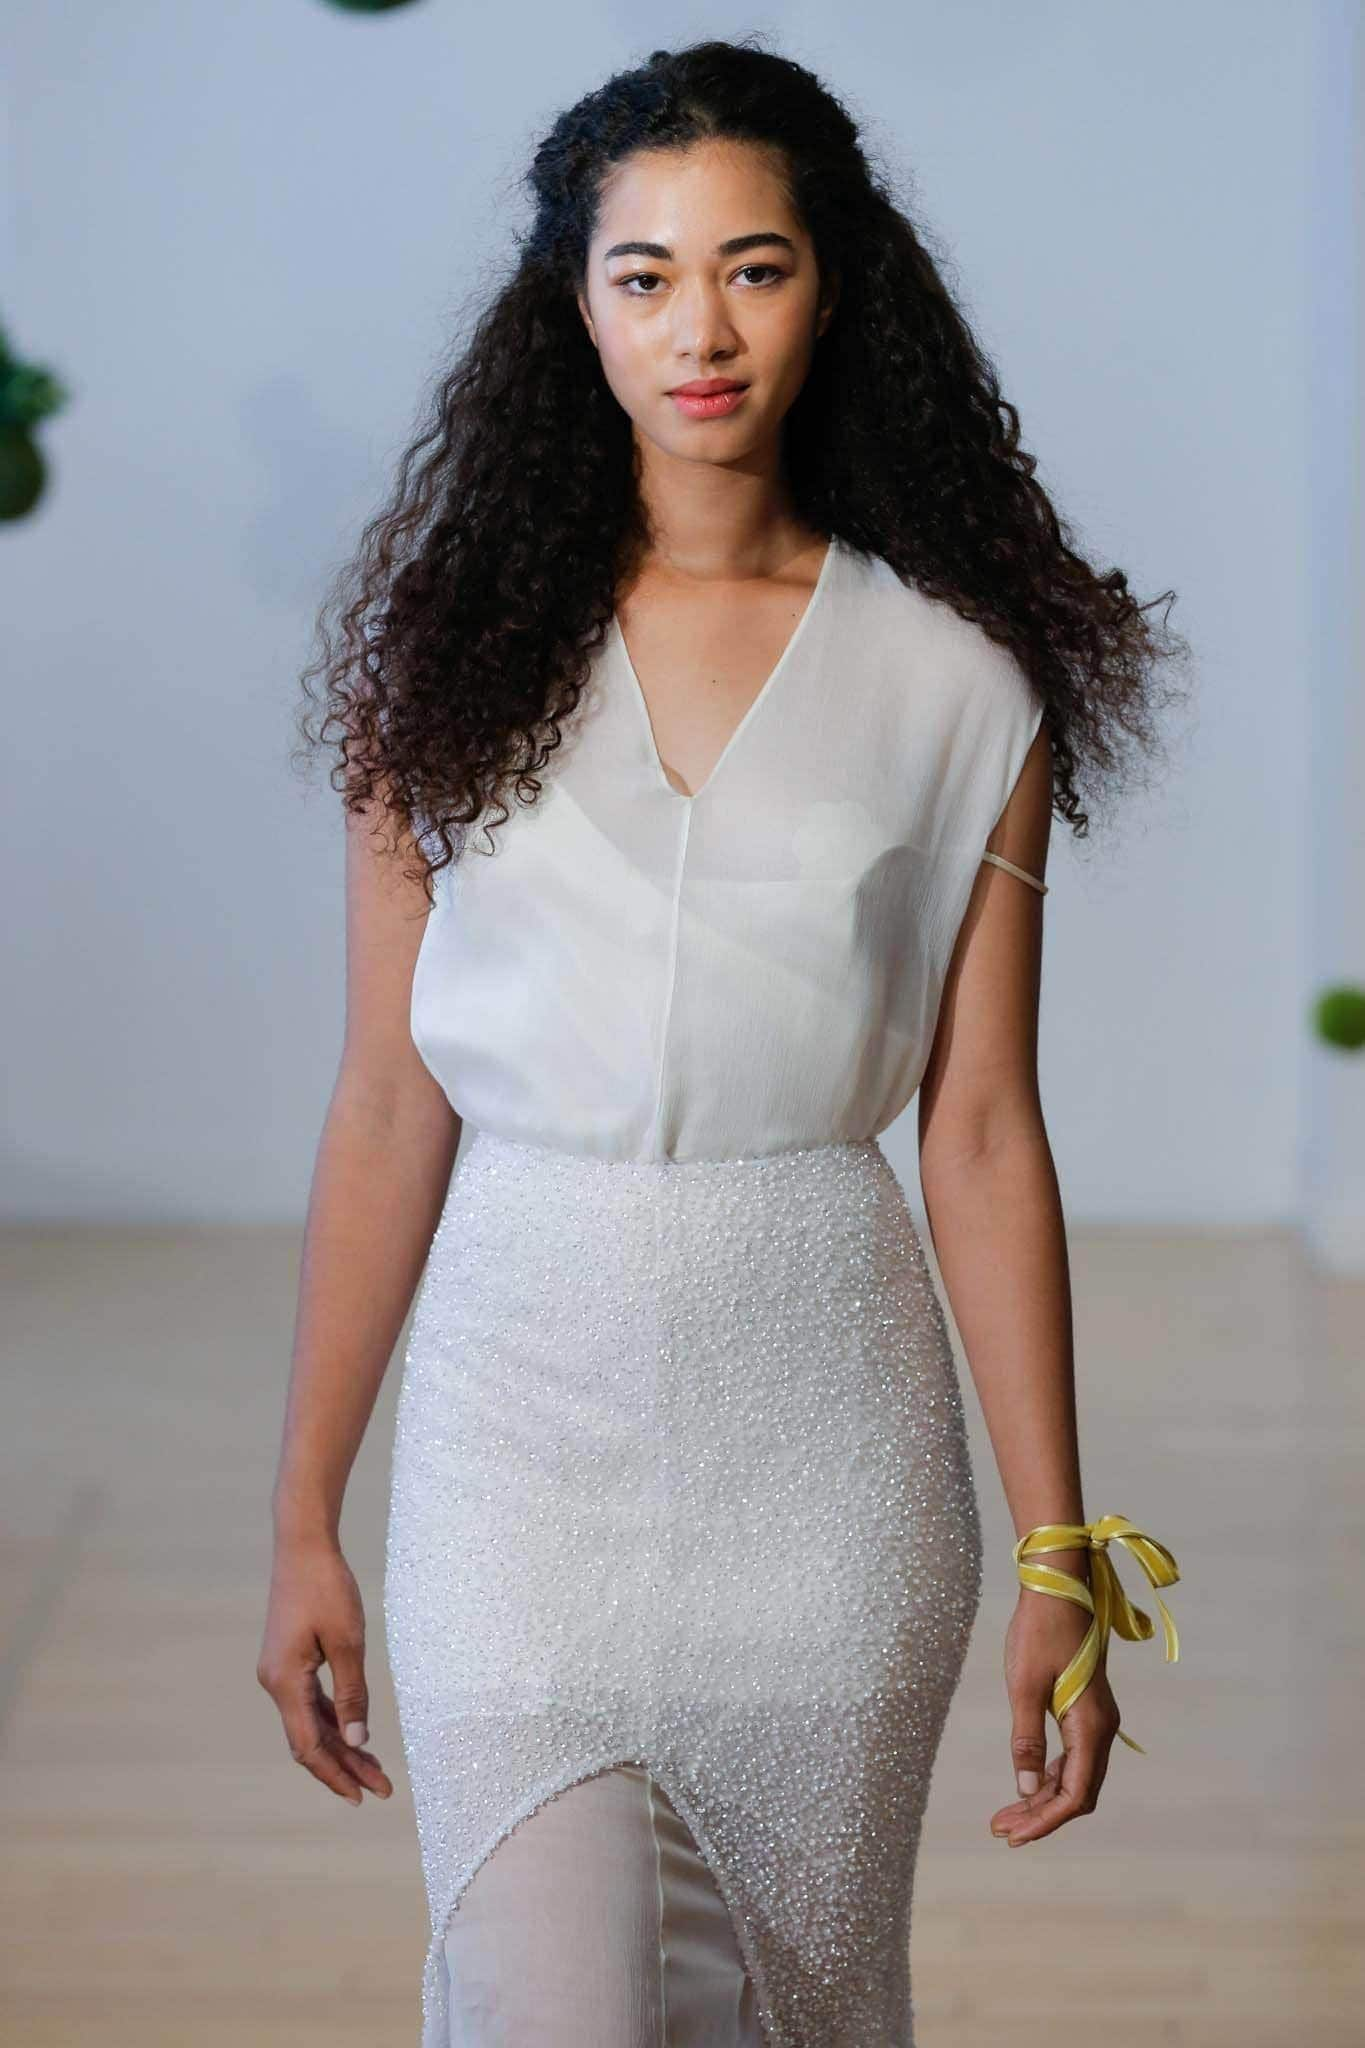 Curly wedding hair: Bridal runway model with long dark natural curly hair with a twisted half-up